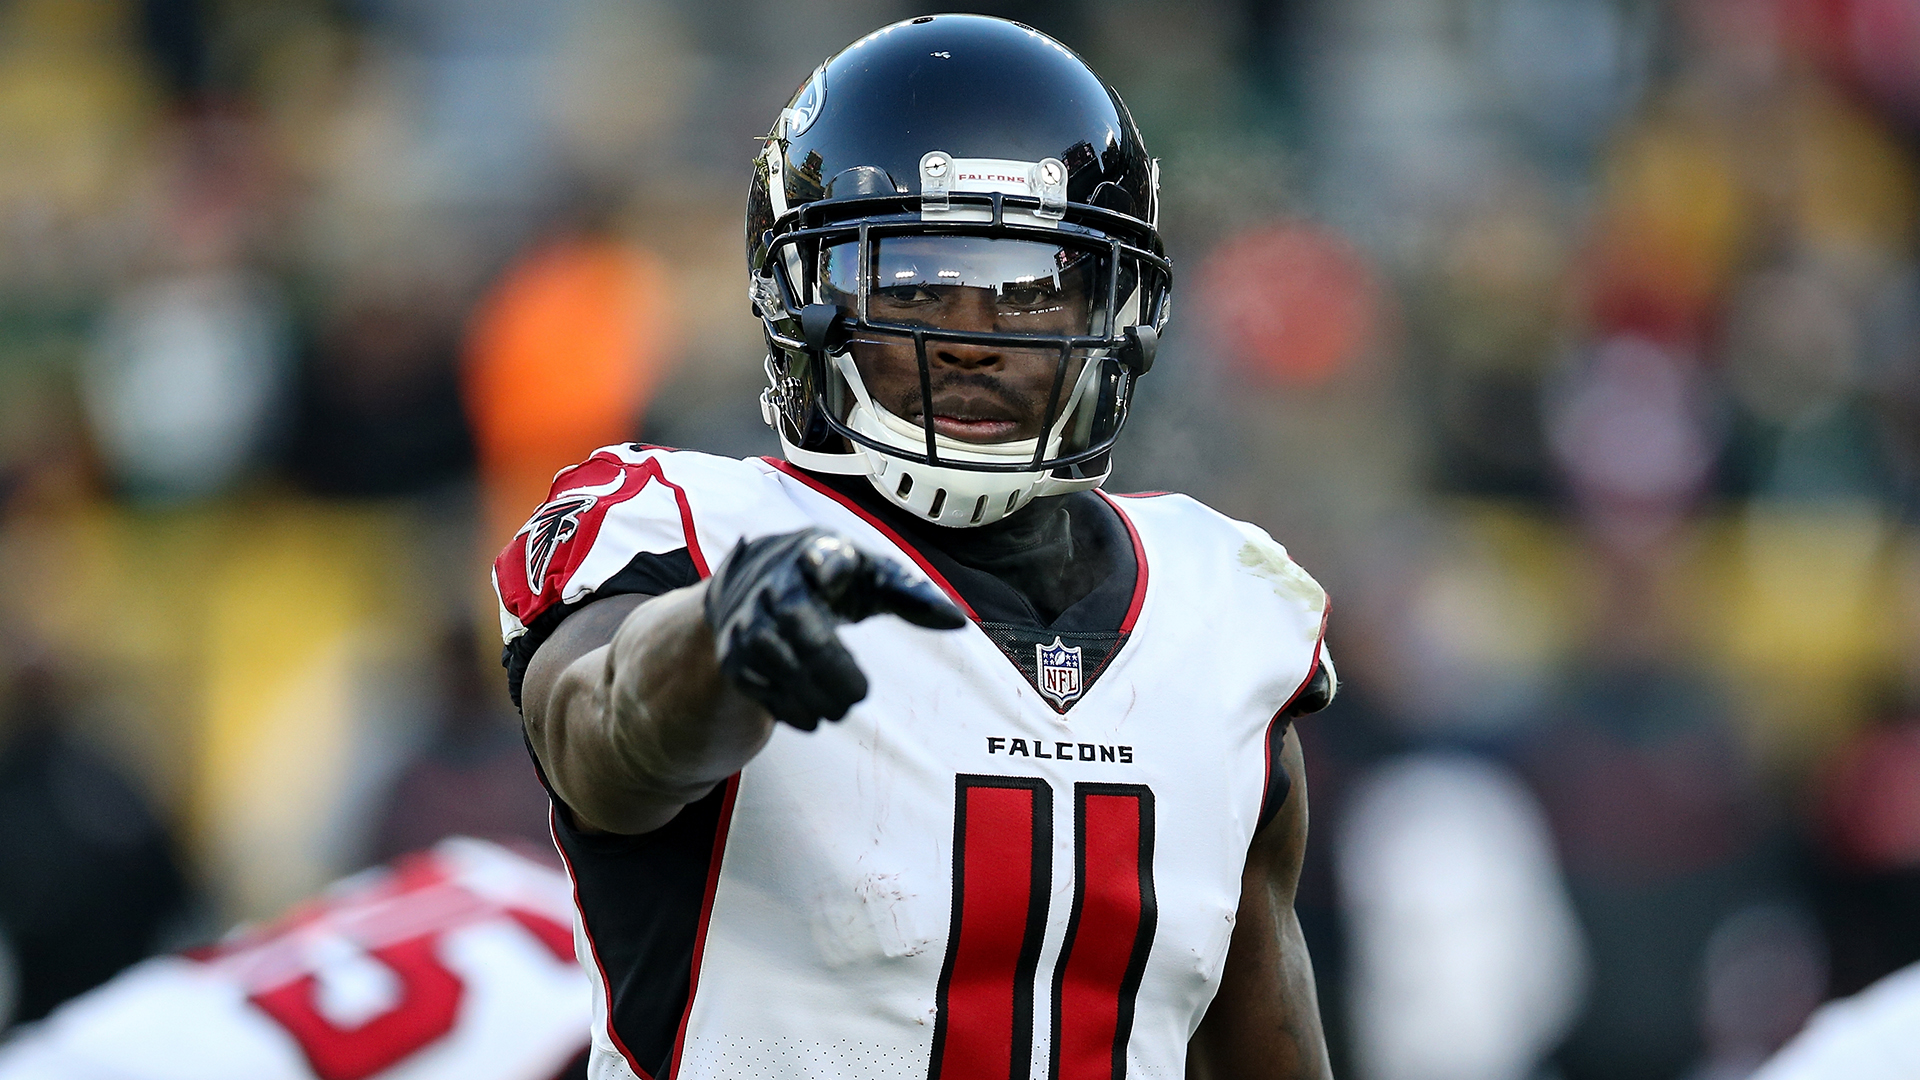 Do the Falcons and Julio Jones already have a new deal in place?